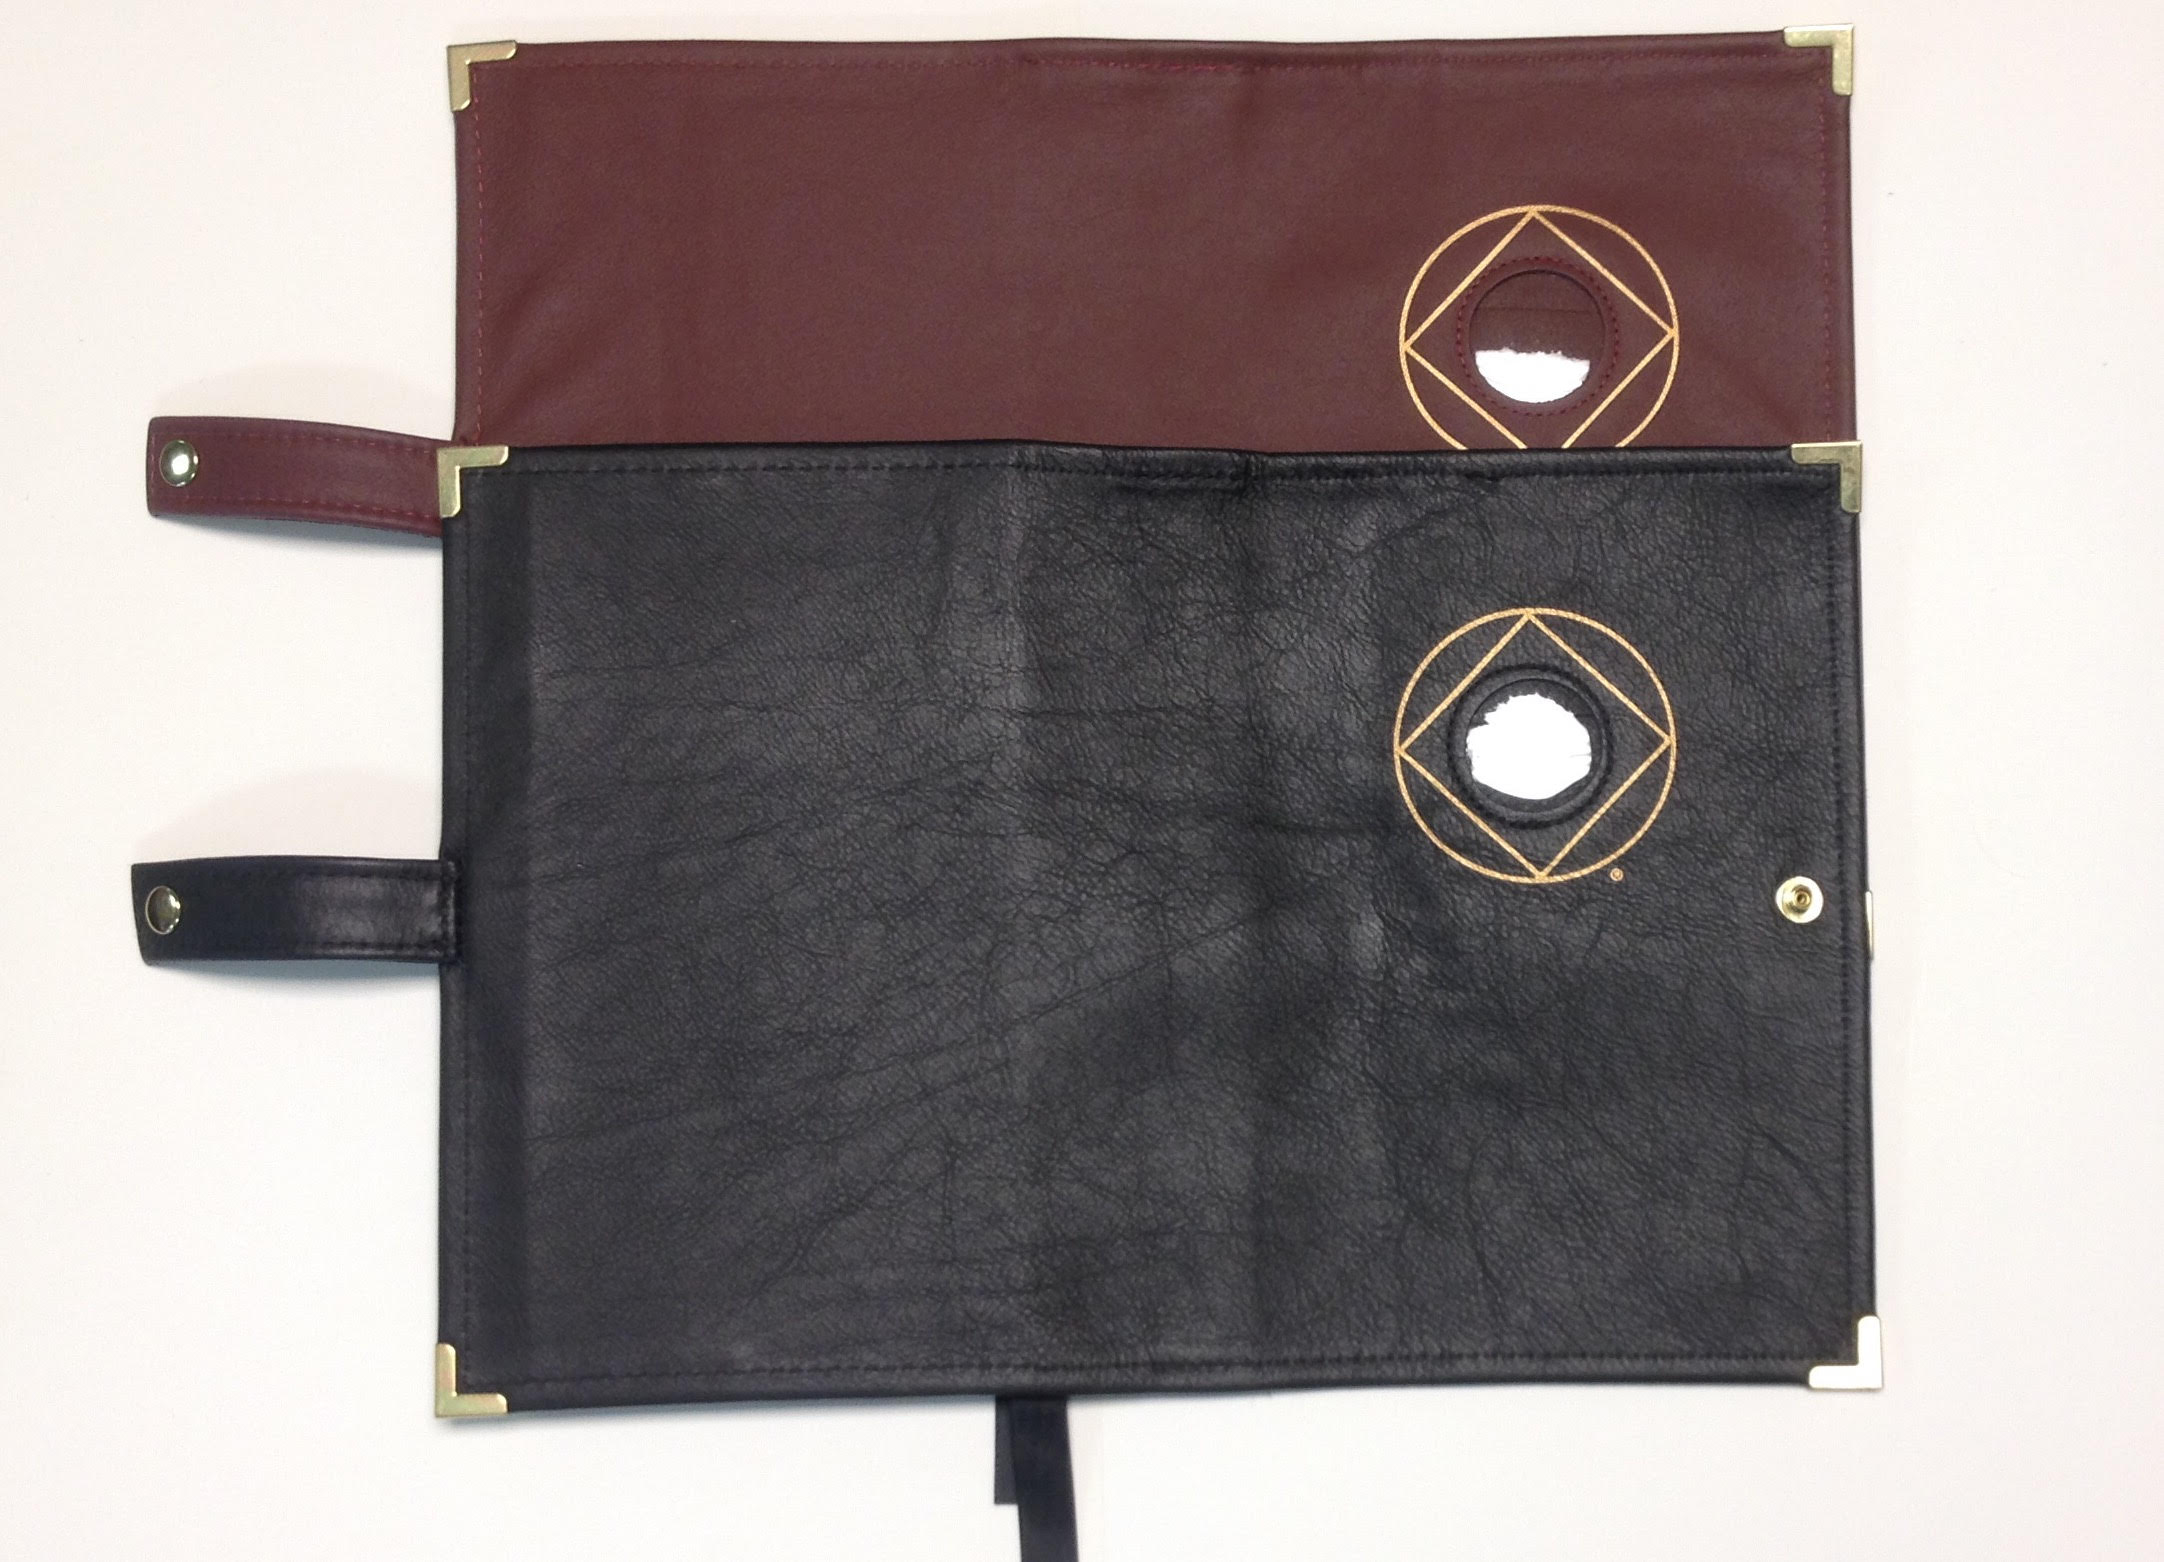 Leather DOUBLE Book Cover 6TH ED. and IT WORKS HOW AND WHY with Medallion Holder